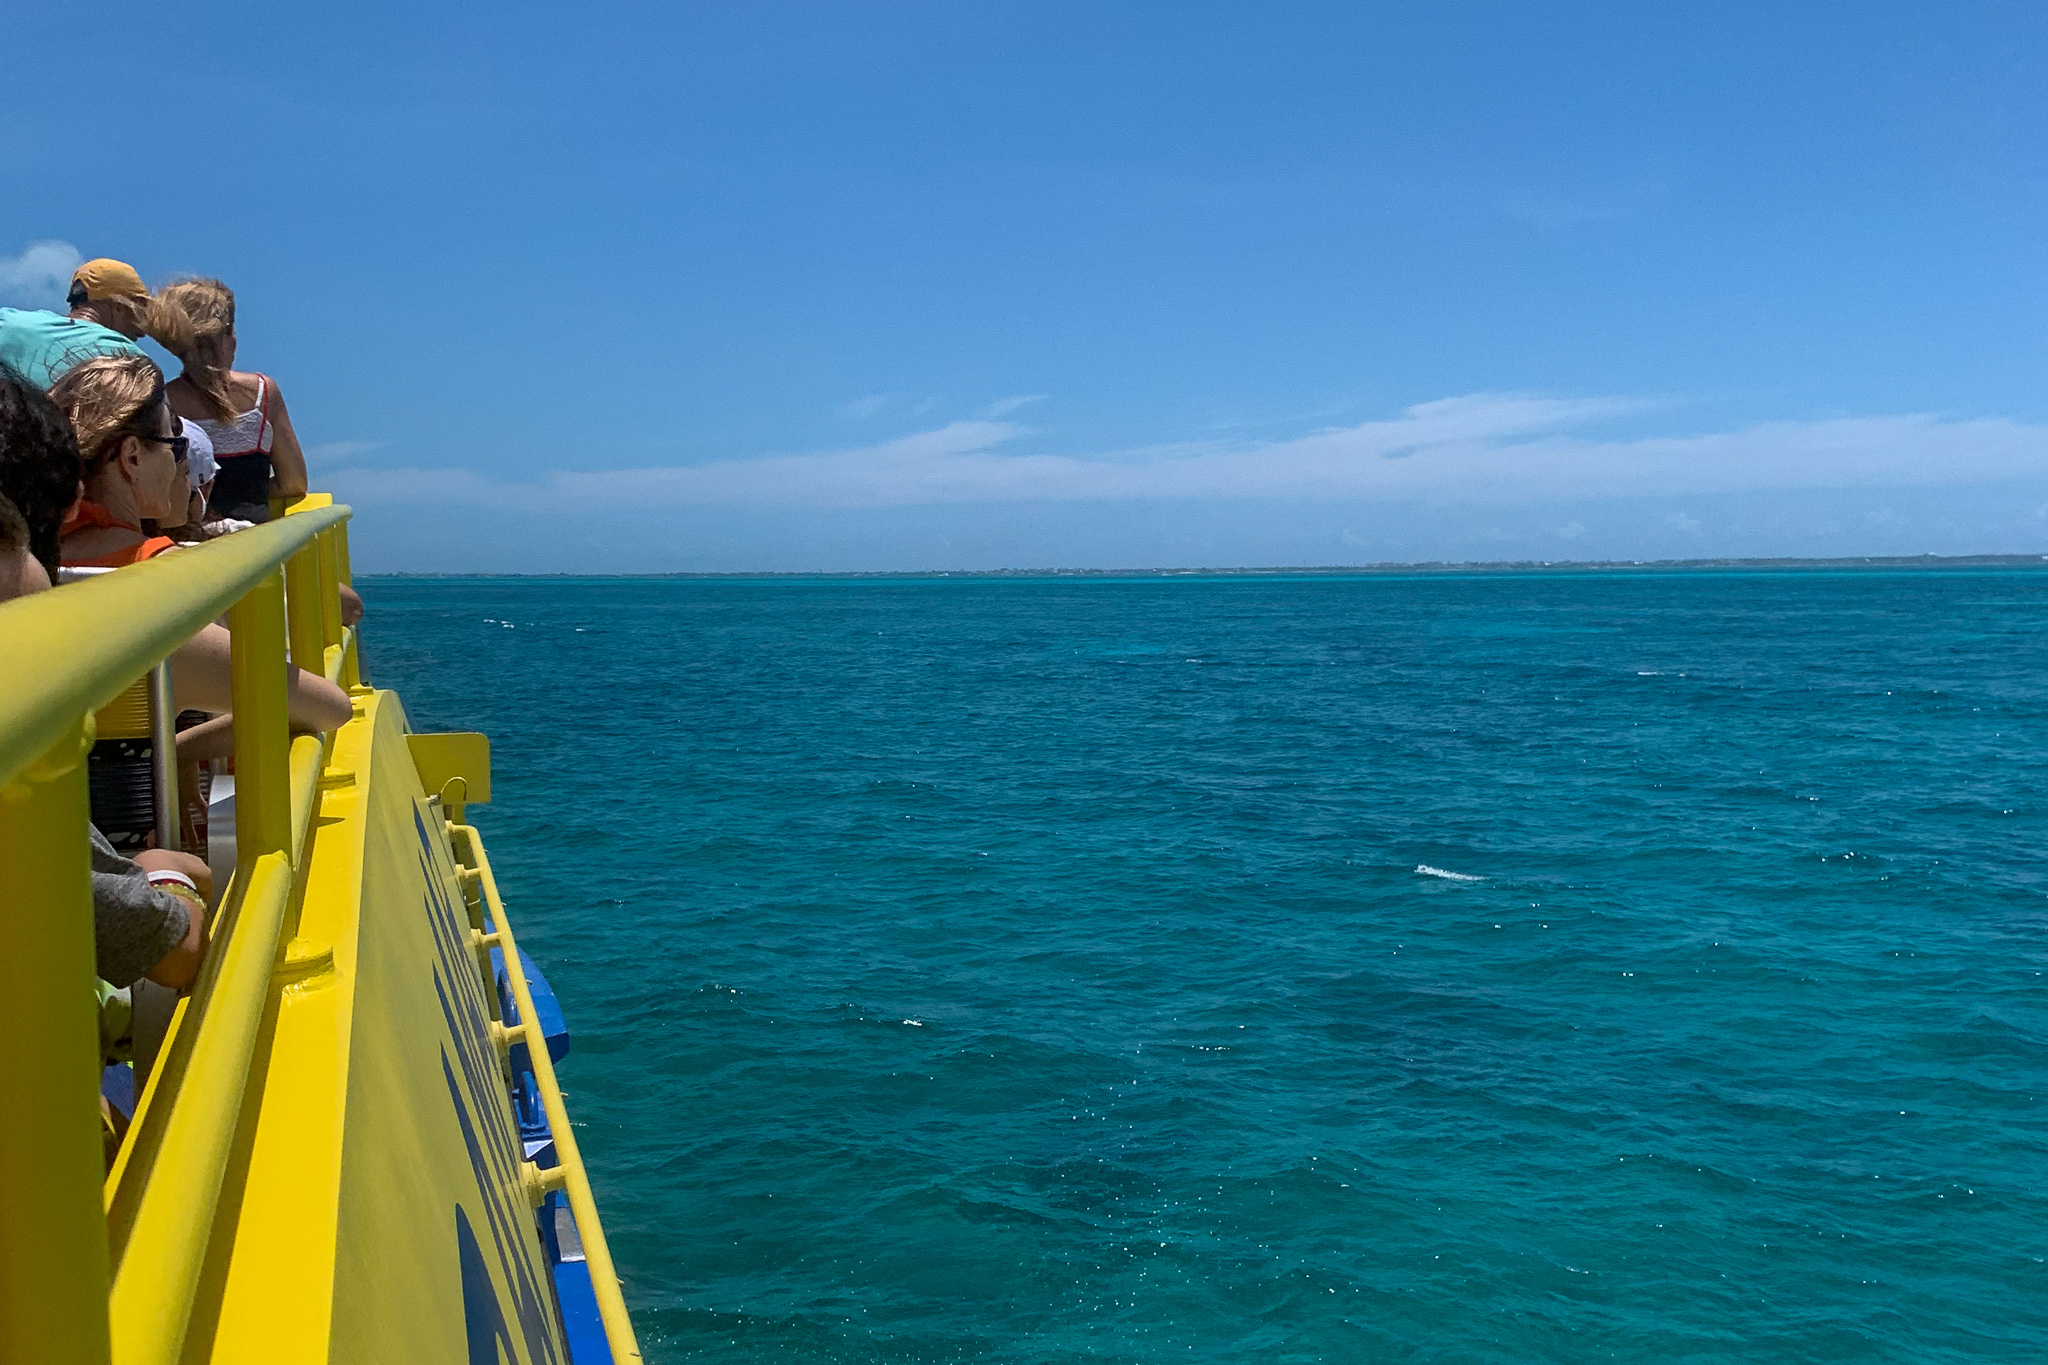 The water between Cancun and Isla Mujeres is some of the prettiest on the planet.